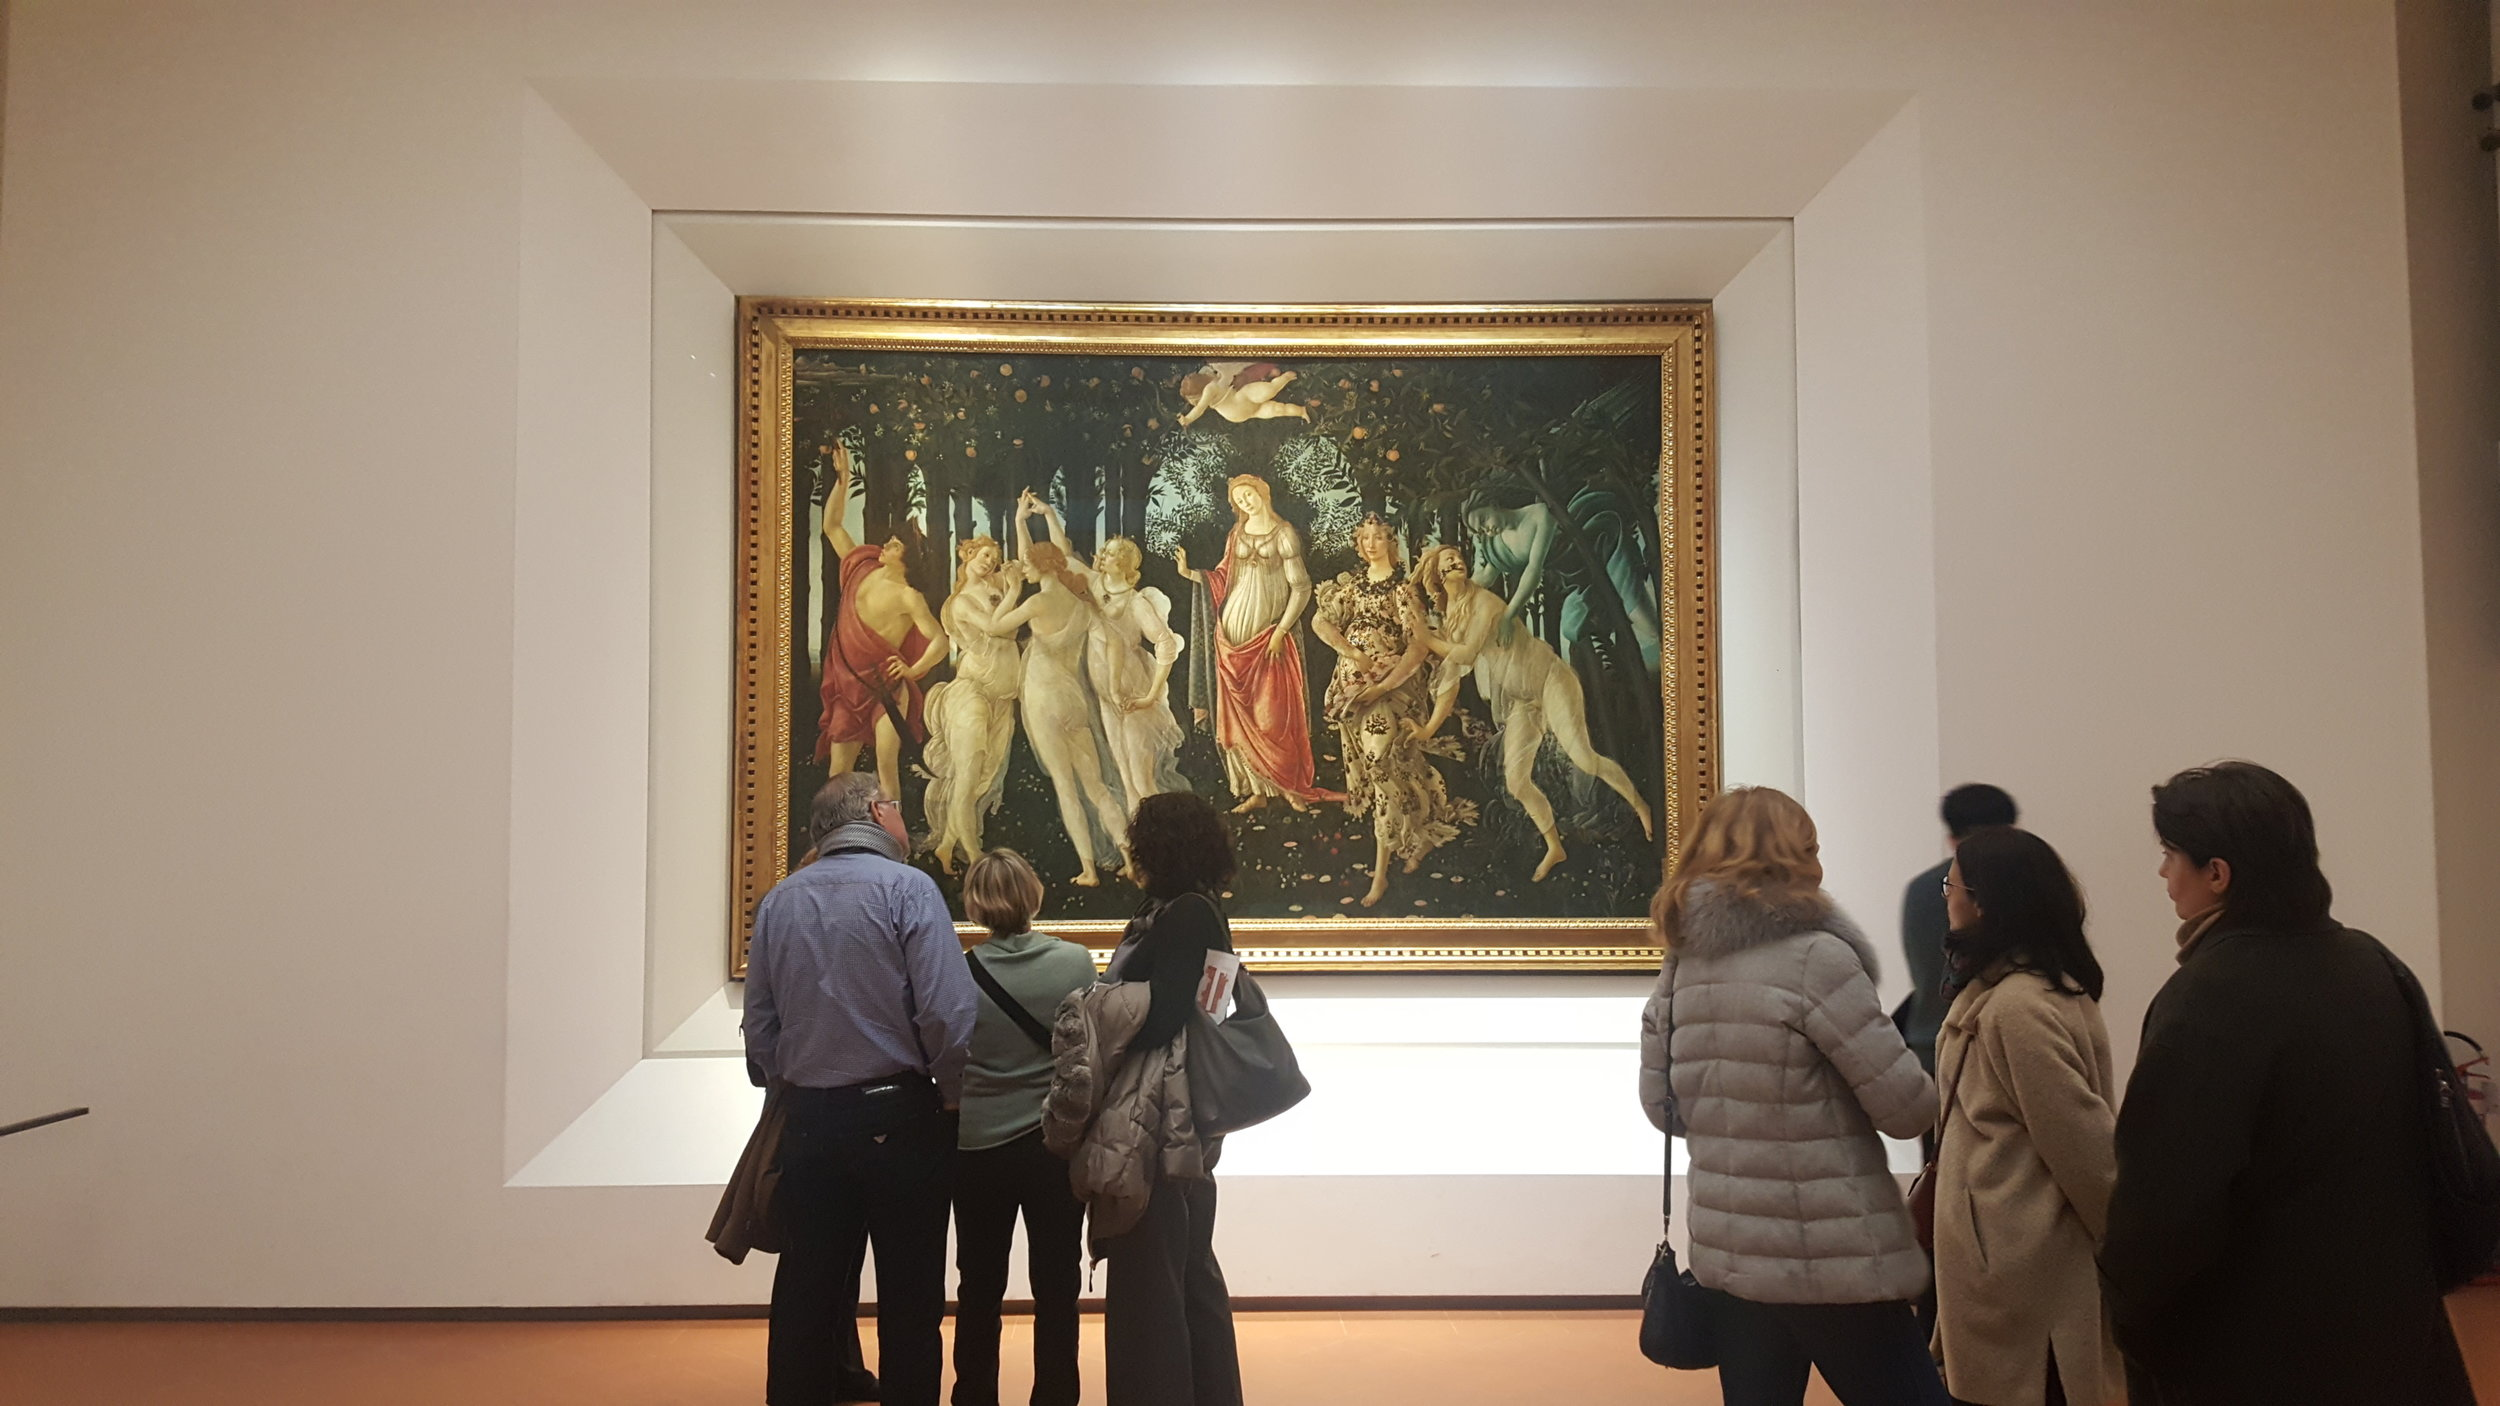 Uffizi Gallery, Florence photo by Louree Maya